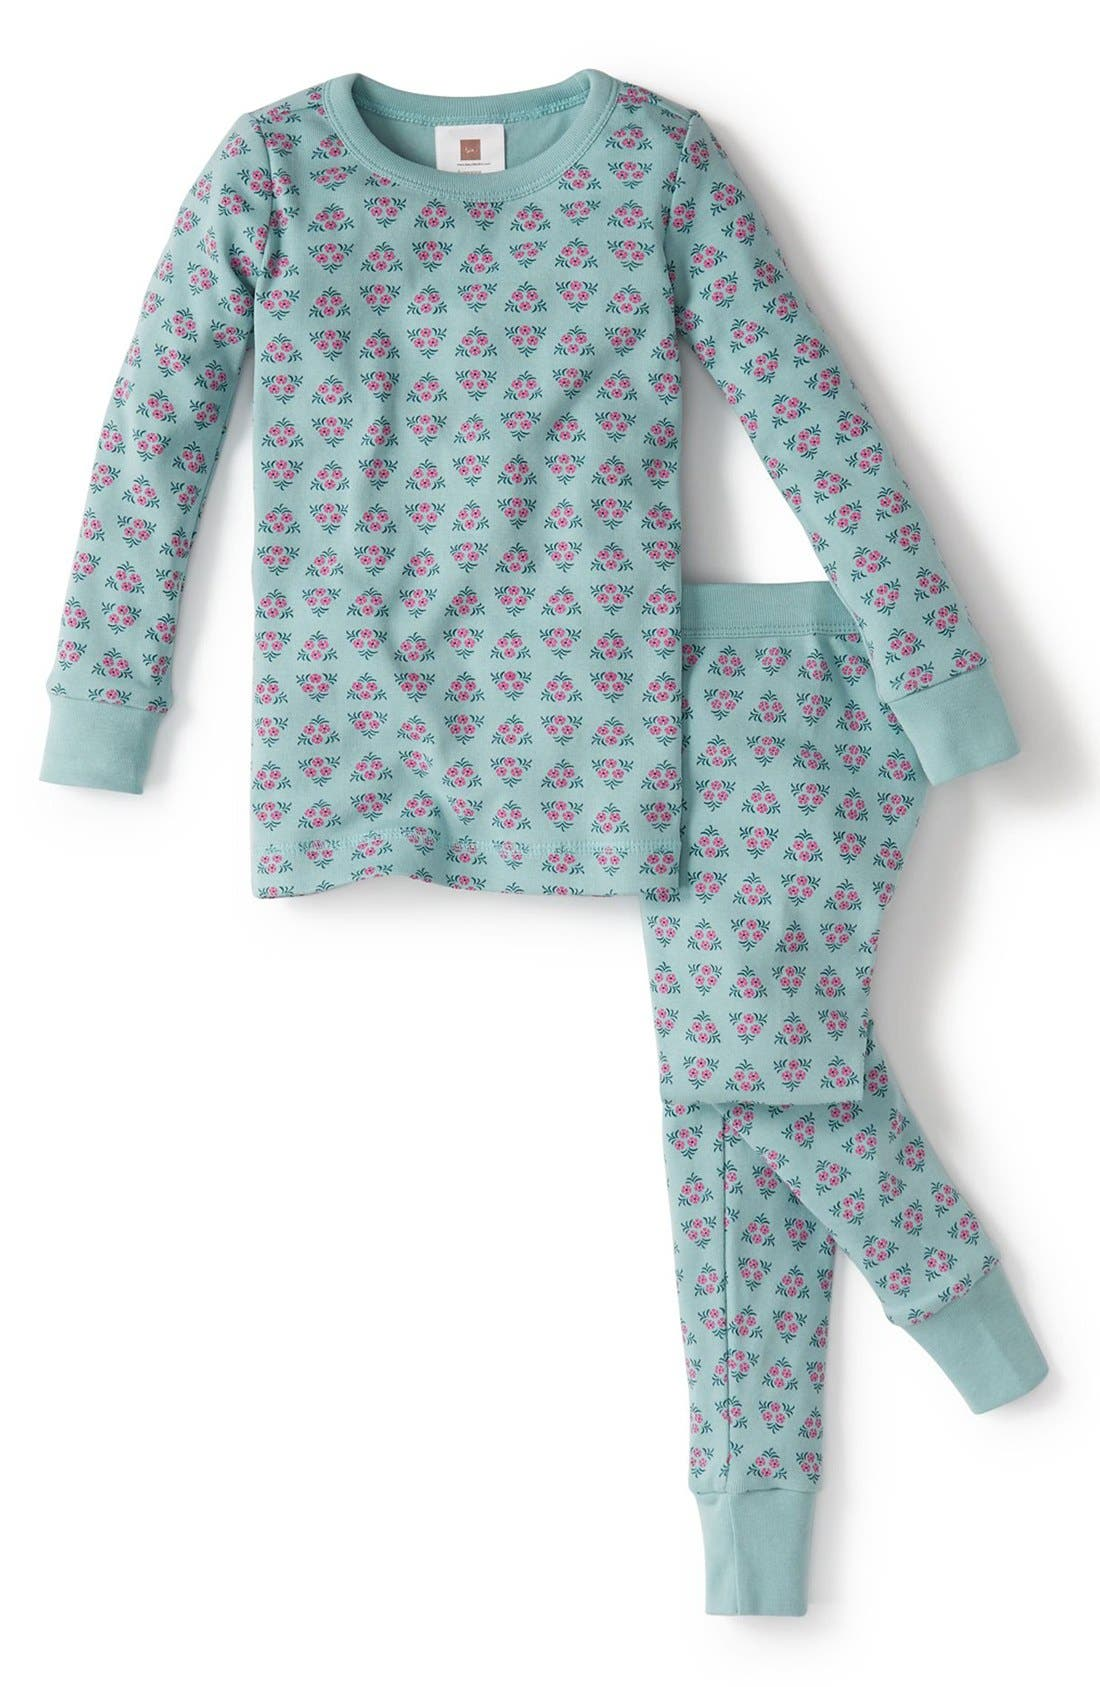 Main Image - Tea Collection 'Cancion de Cuna' Fitted Two-Piece Pajamas (Toddler Girls, Little Girls & Big Girls)